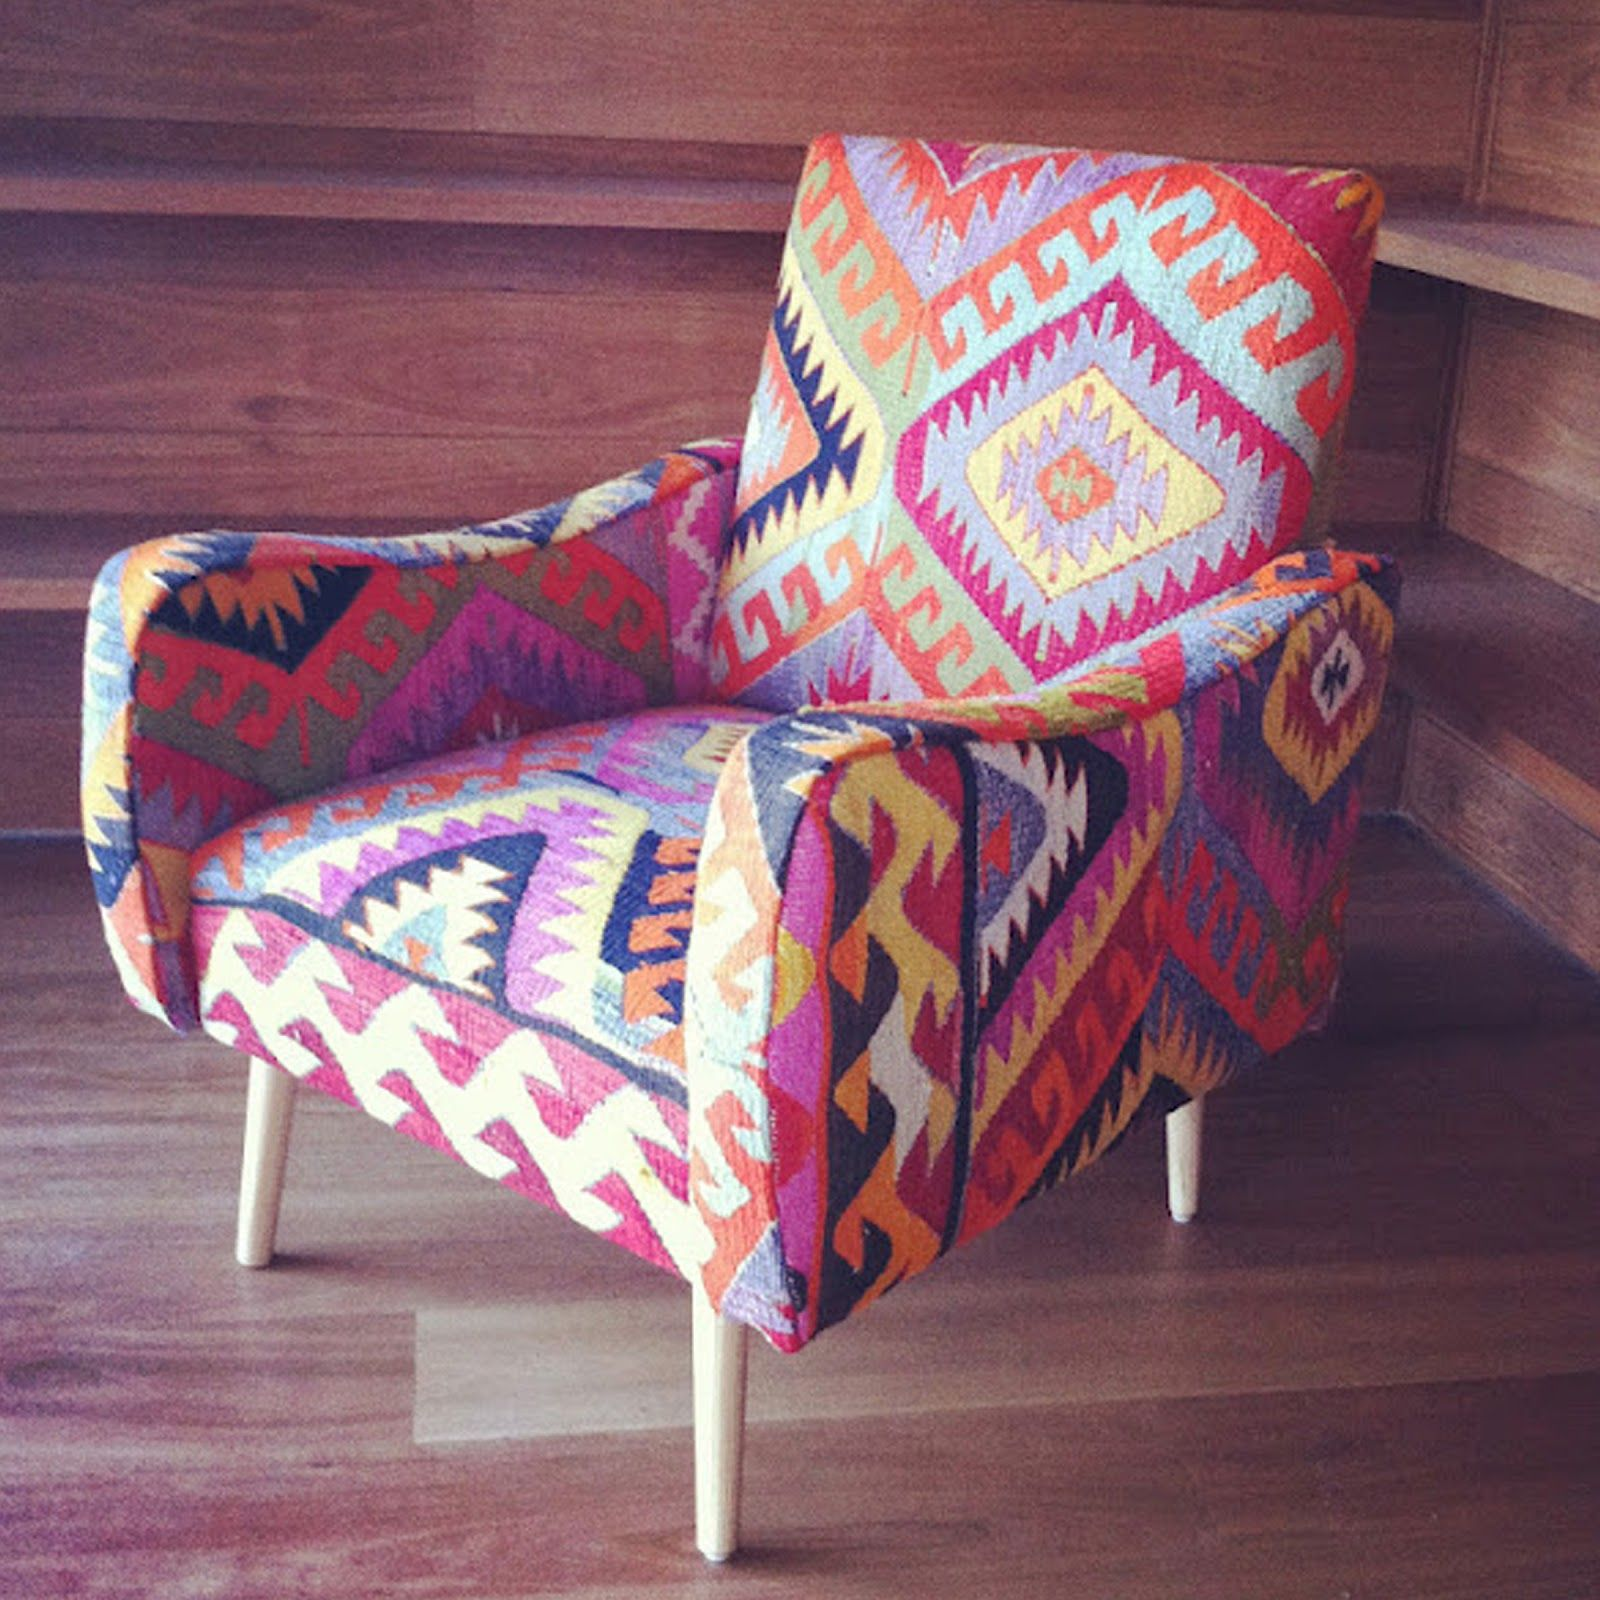 Superior Kilim Covered Chair Via Absolutely Beautiful Things  Www.madmotherdesign.blogspot.com